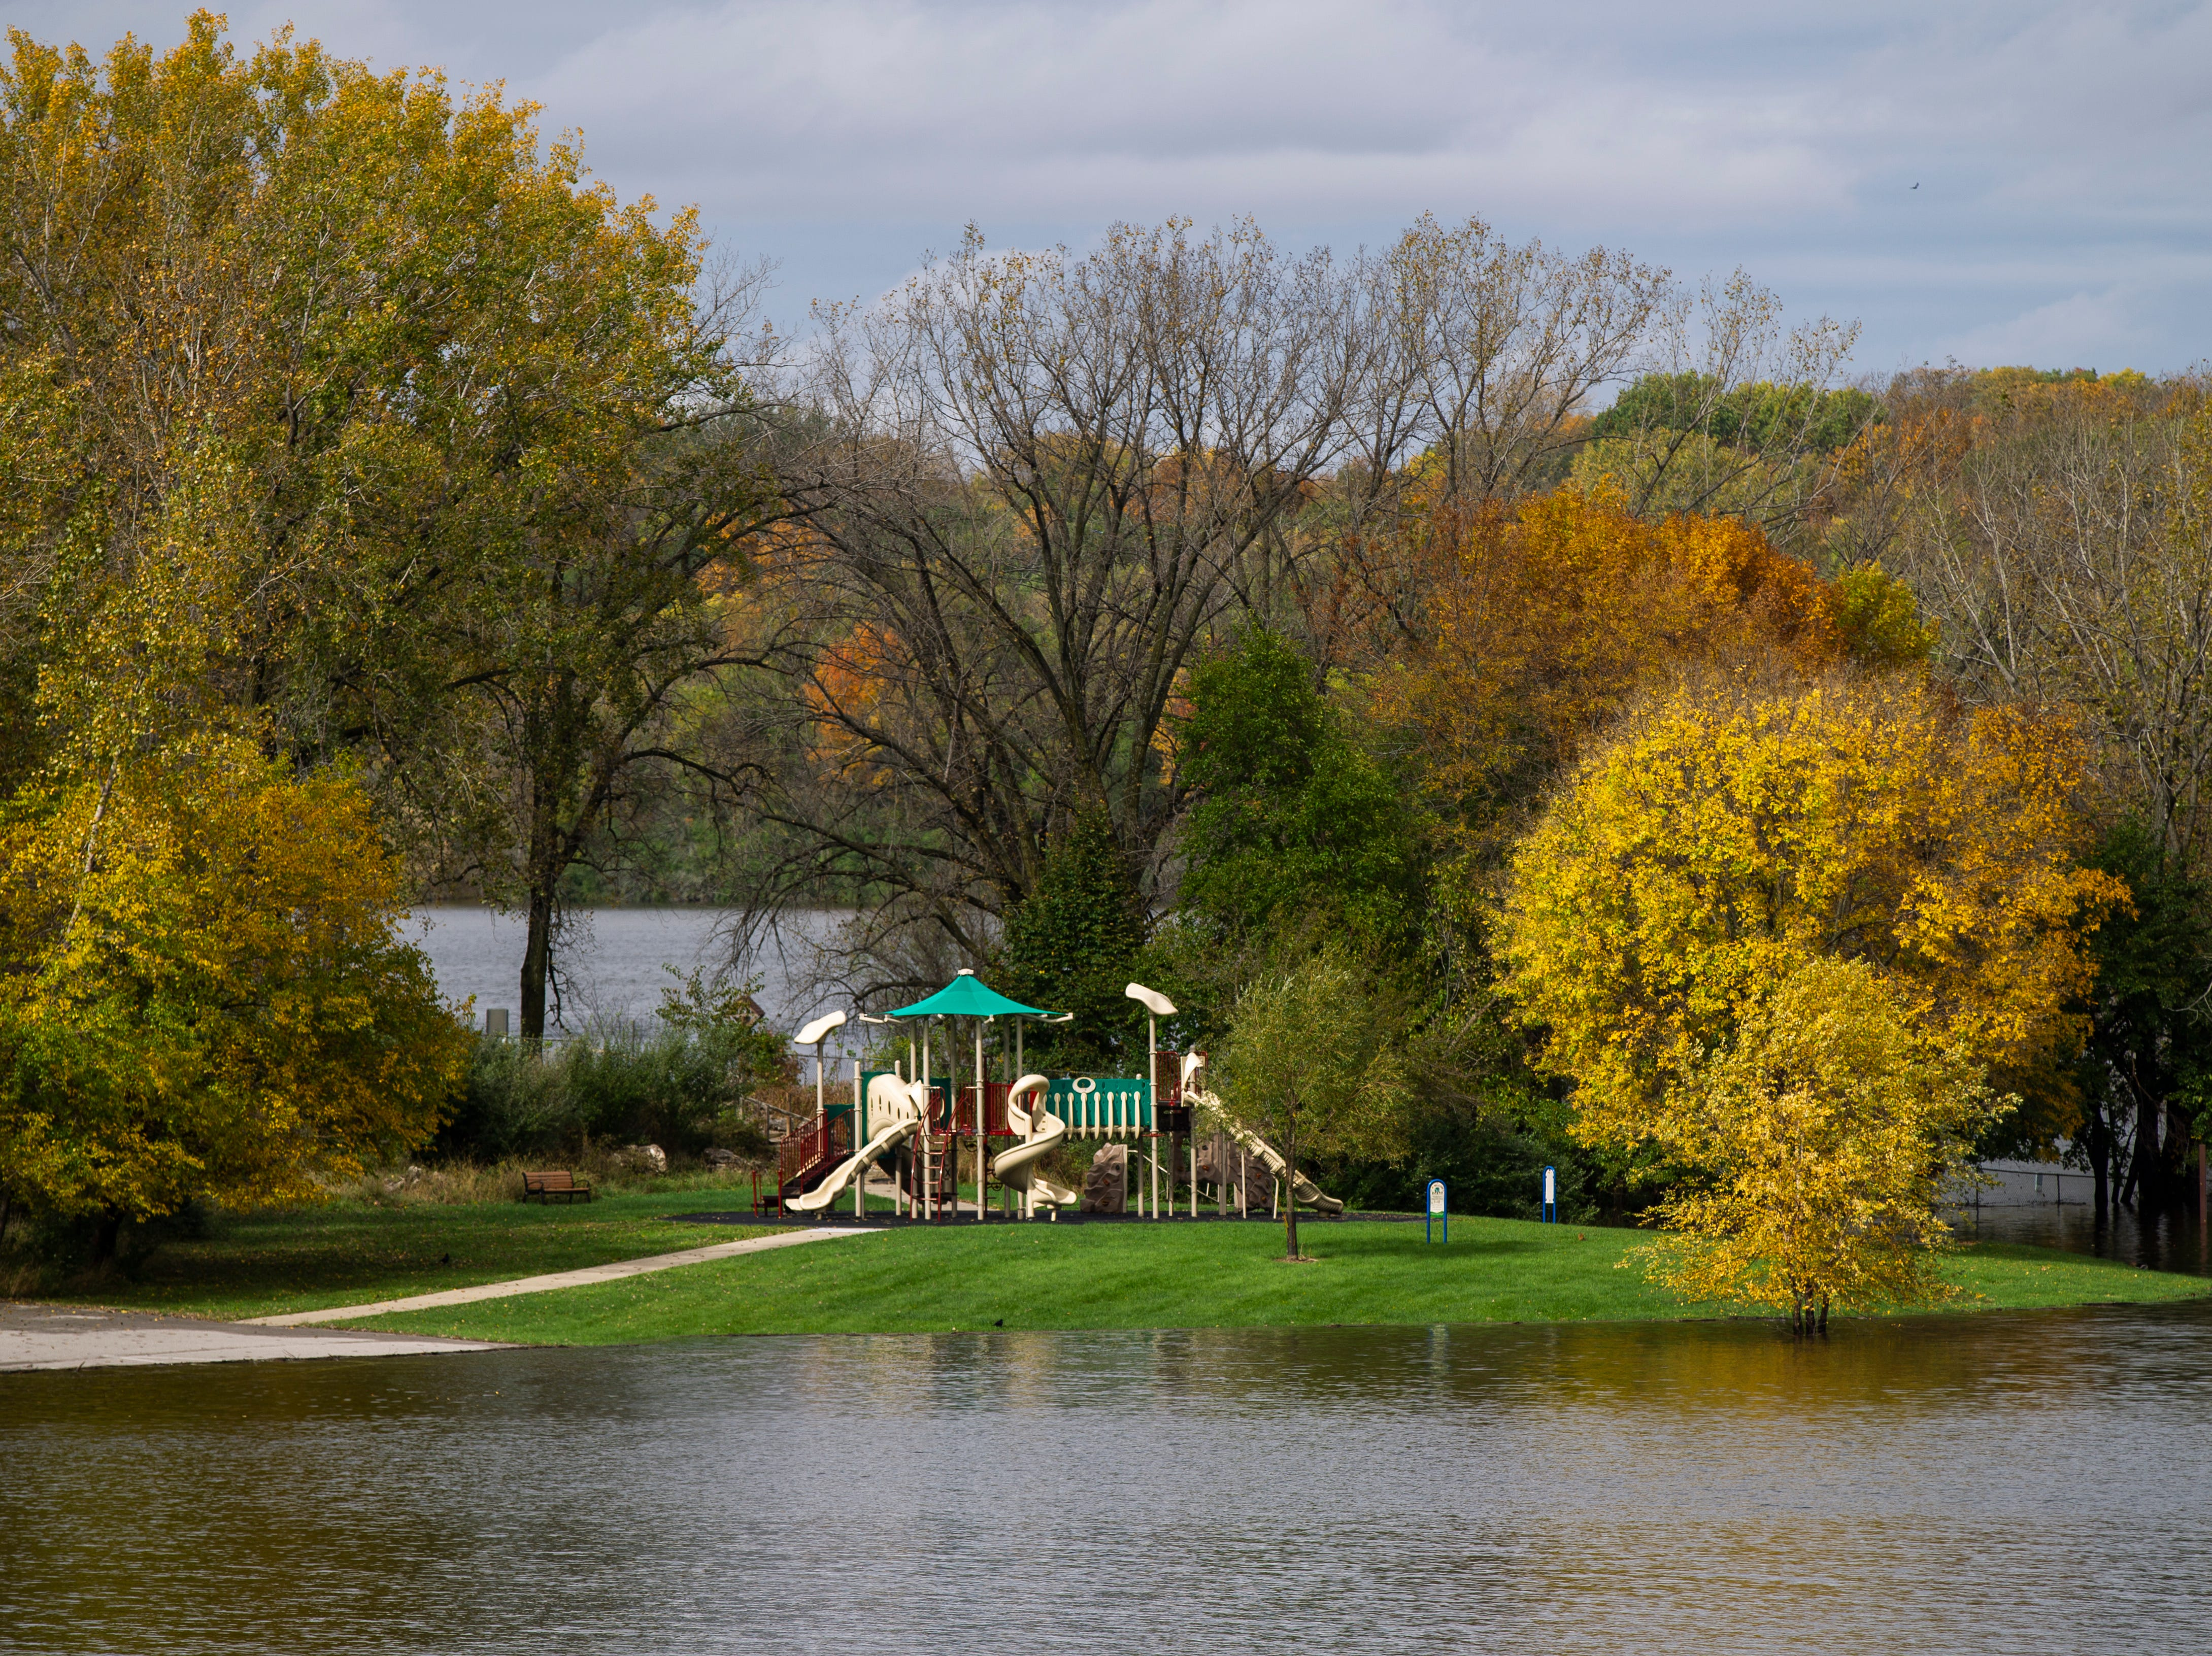 Water raises out past the beach to surround a play structure on Wednesday, Oct. 10, 2018, at the Coralville Lake dam.